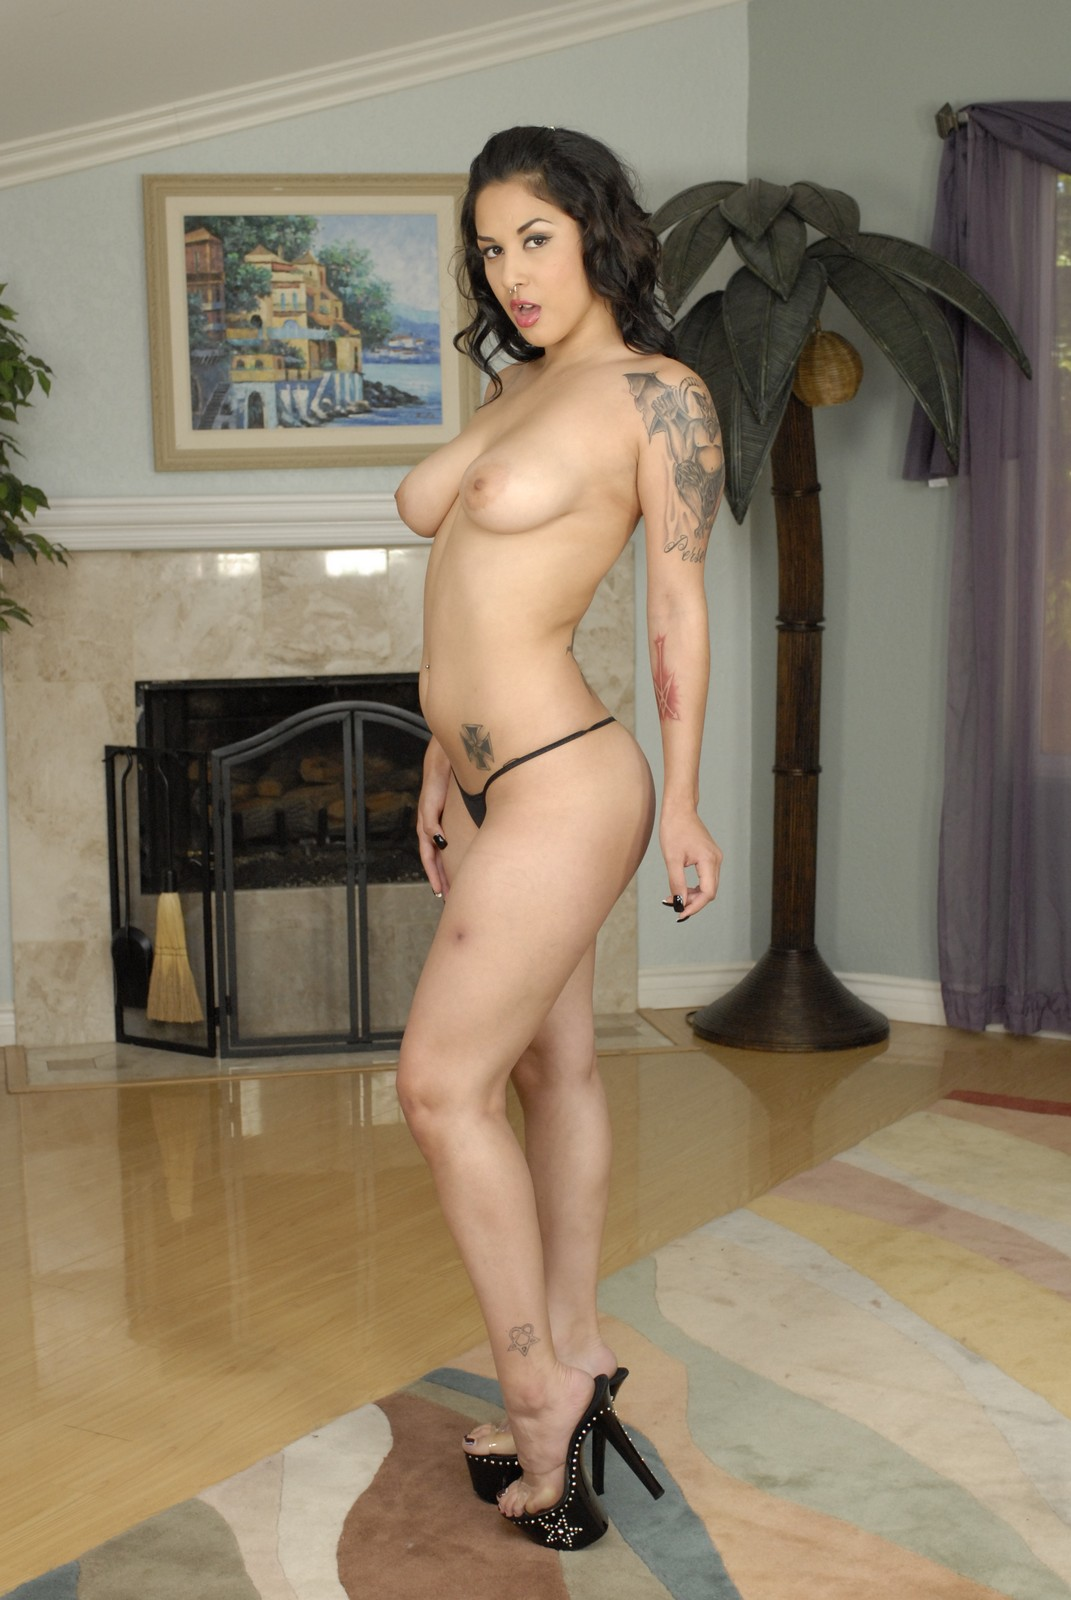 from Ricardo taylor paige cox nude